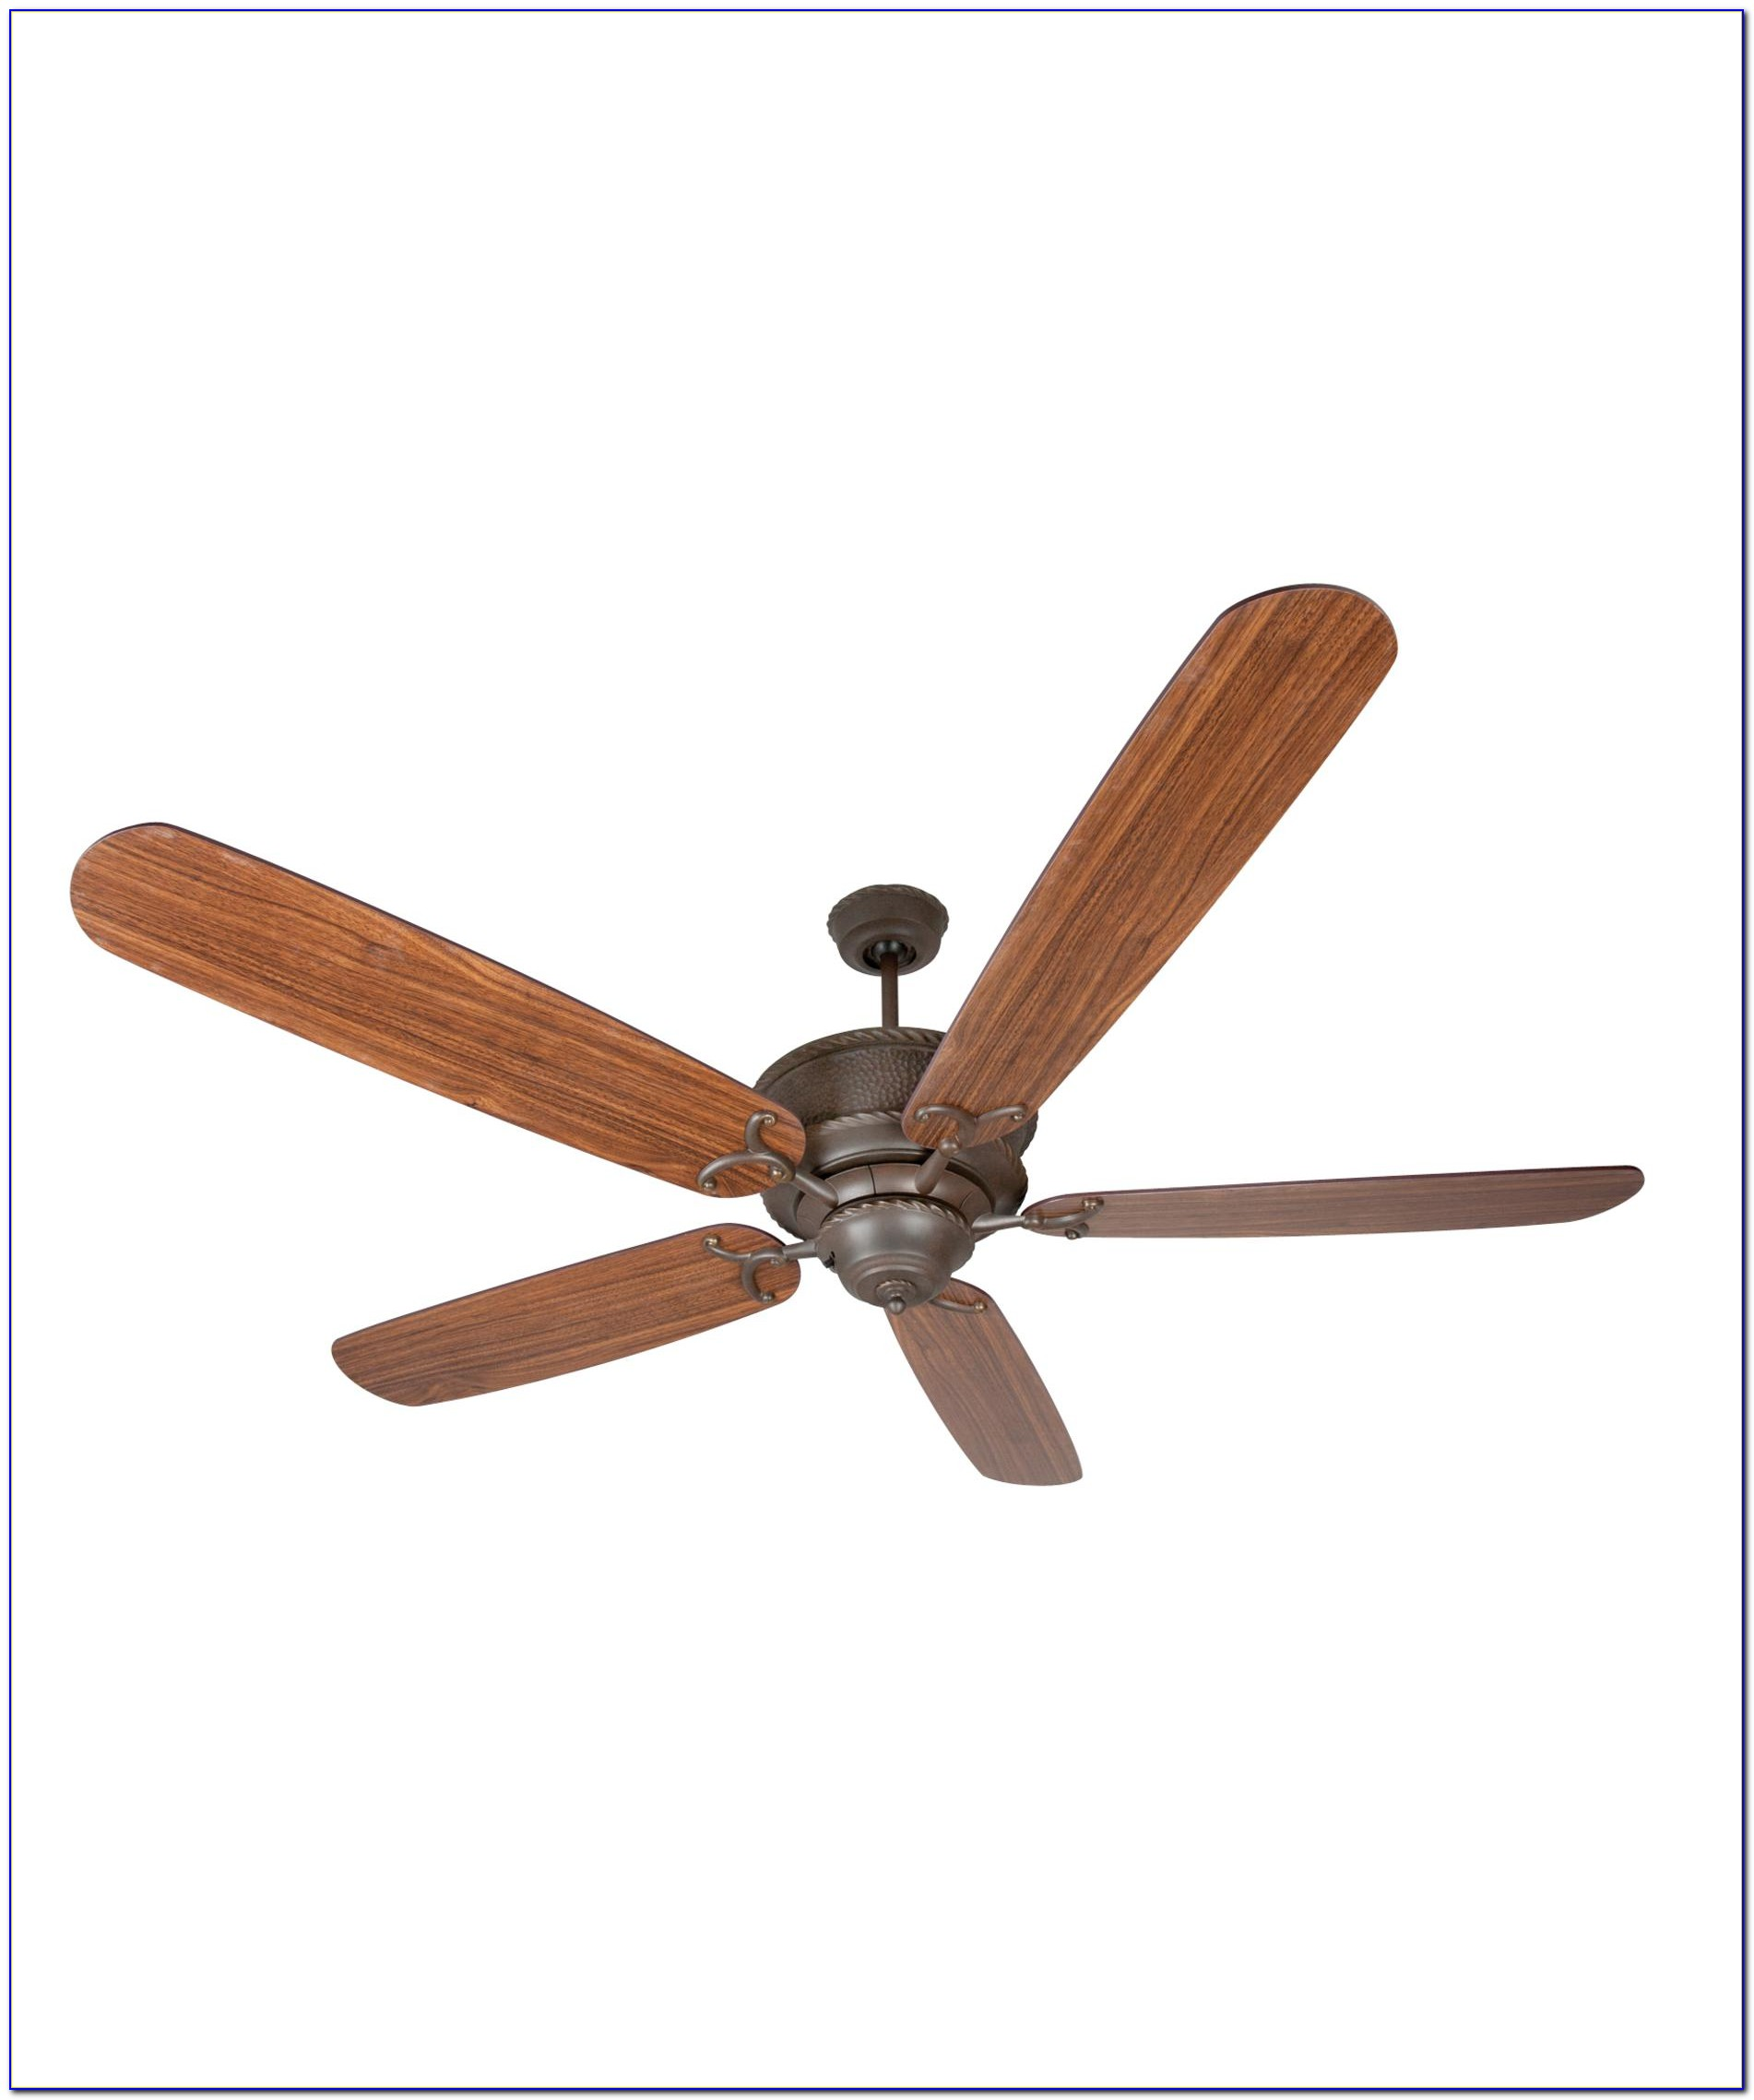 Altura 68 Inch Ceiling Fan Instructions